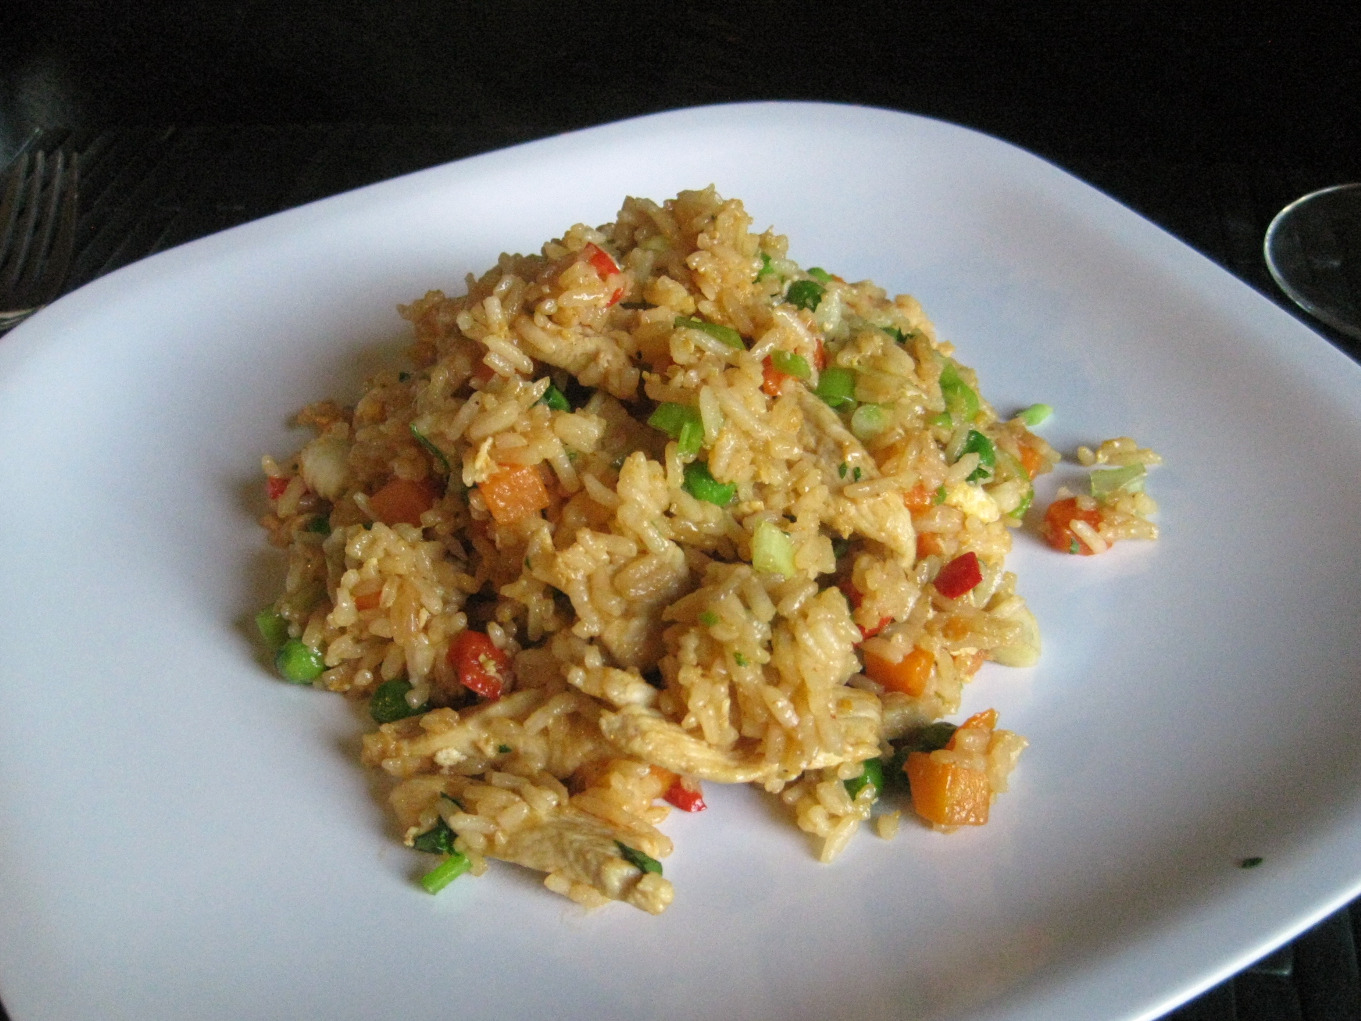 My Life On A Plate: Thai-Style Chicken Fried Rice